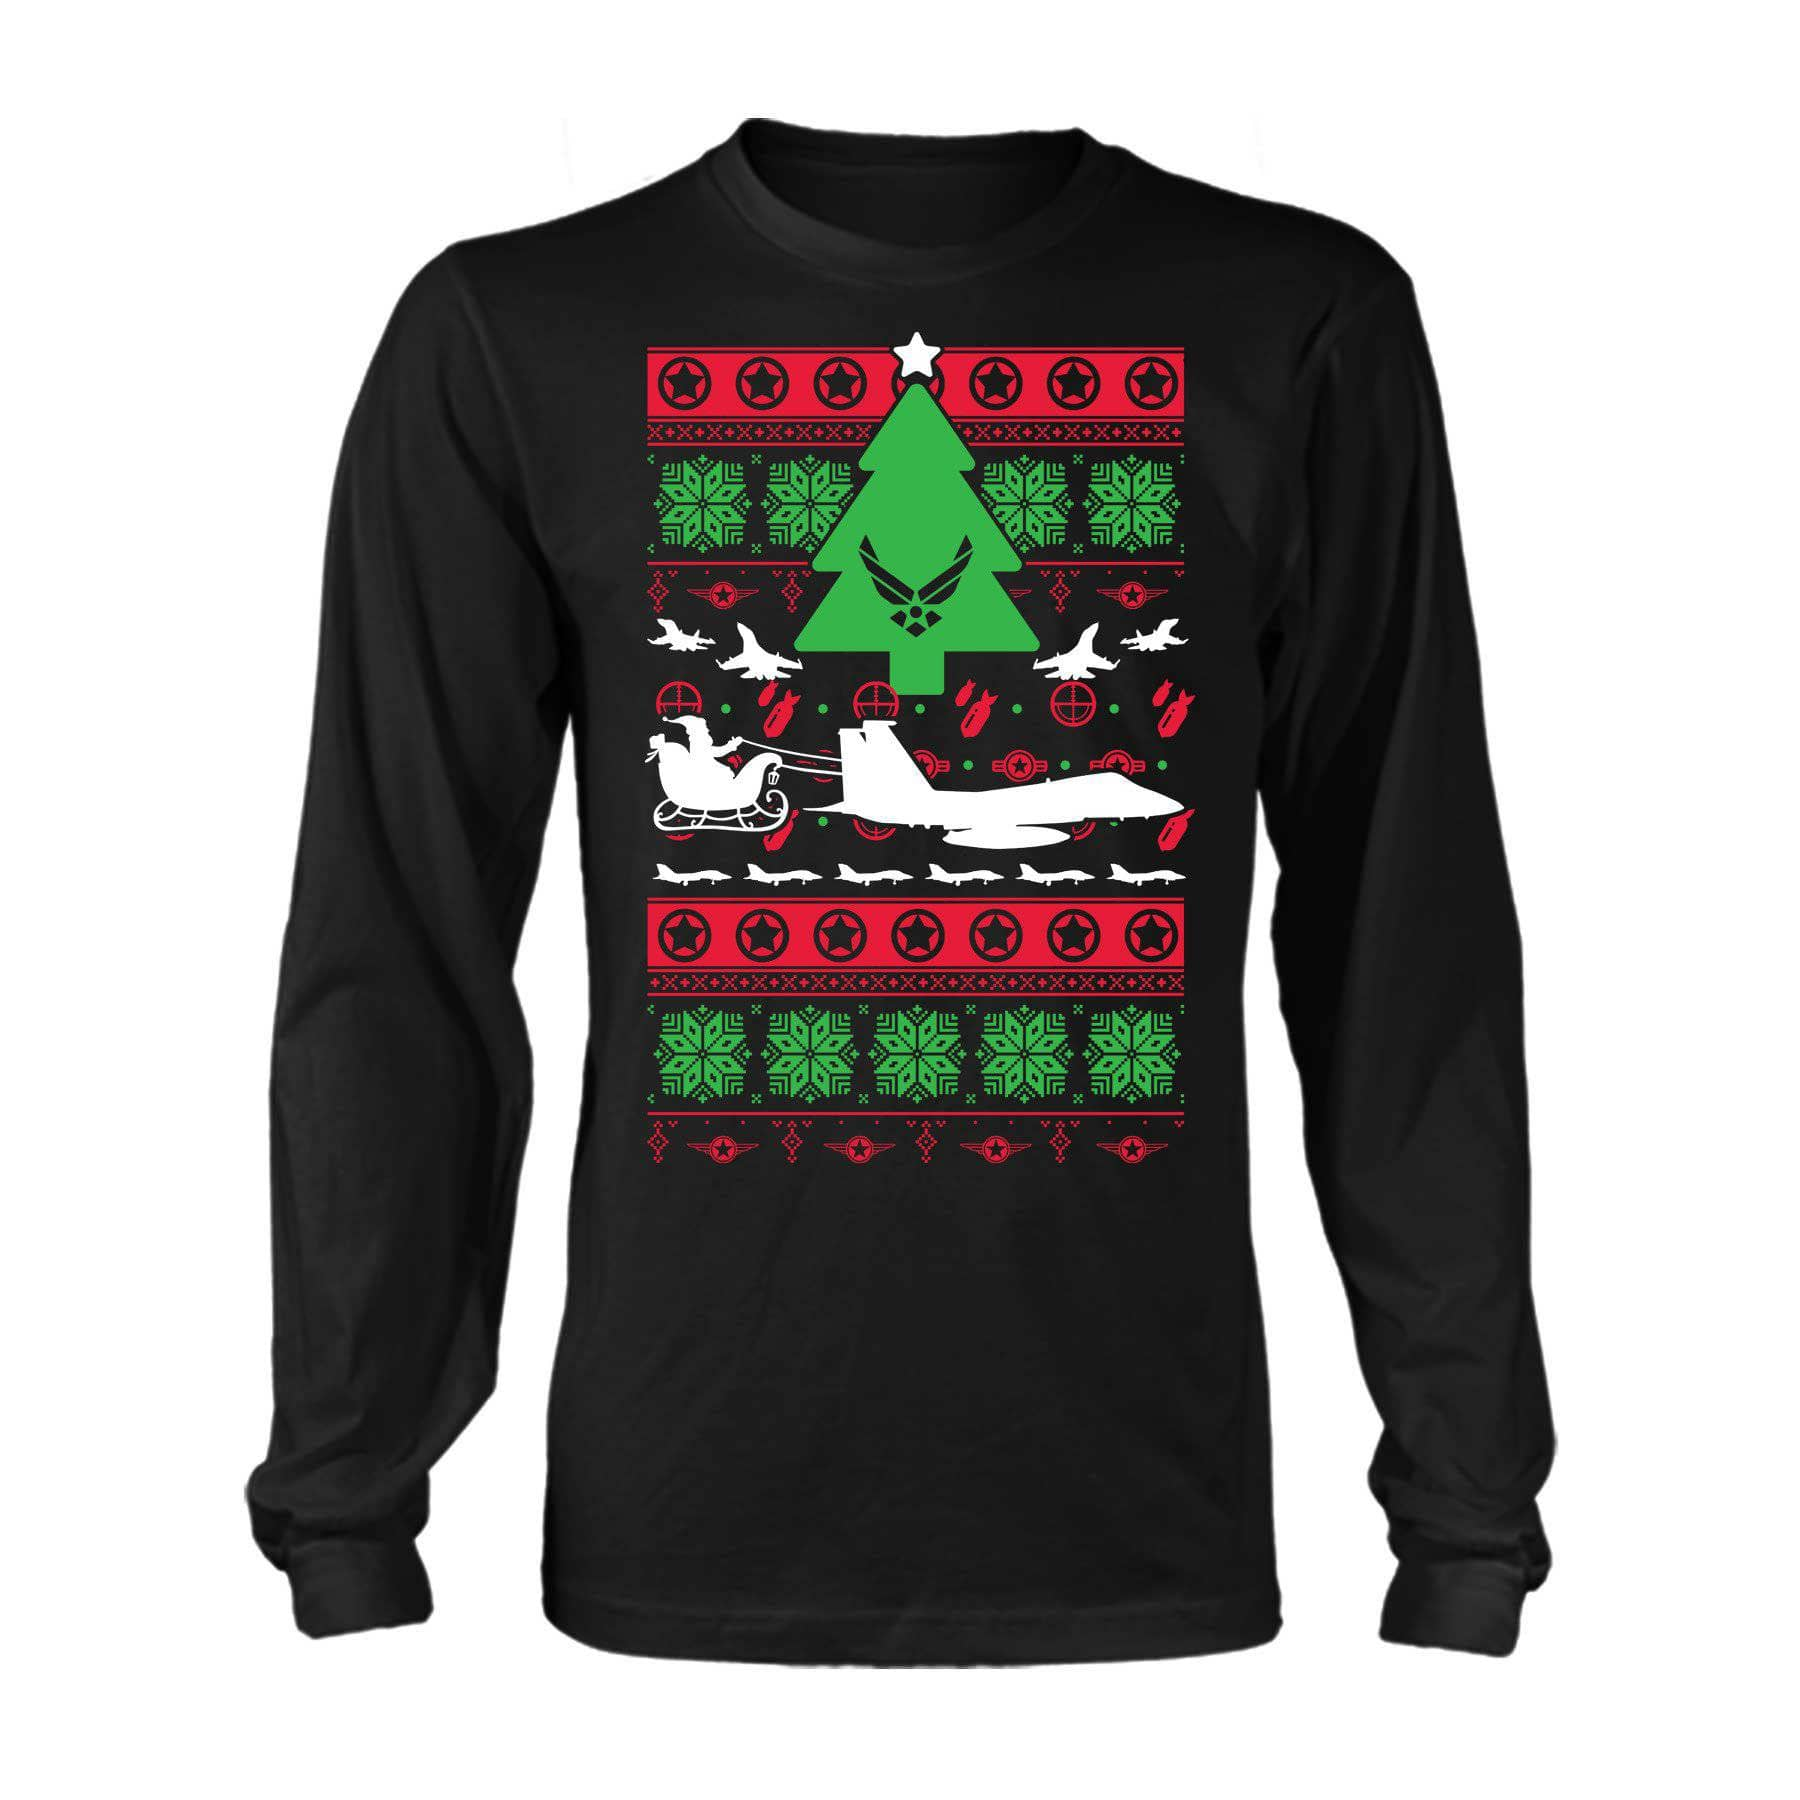 Christmas Sweater Air Force